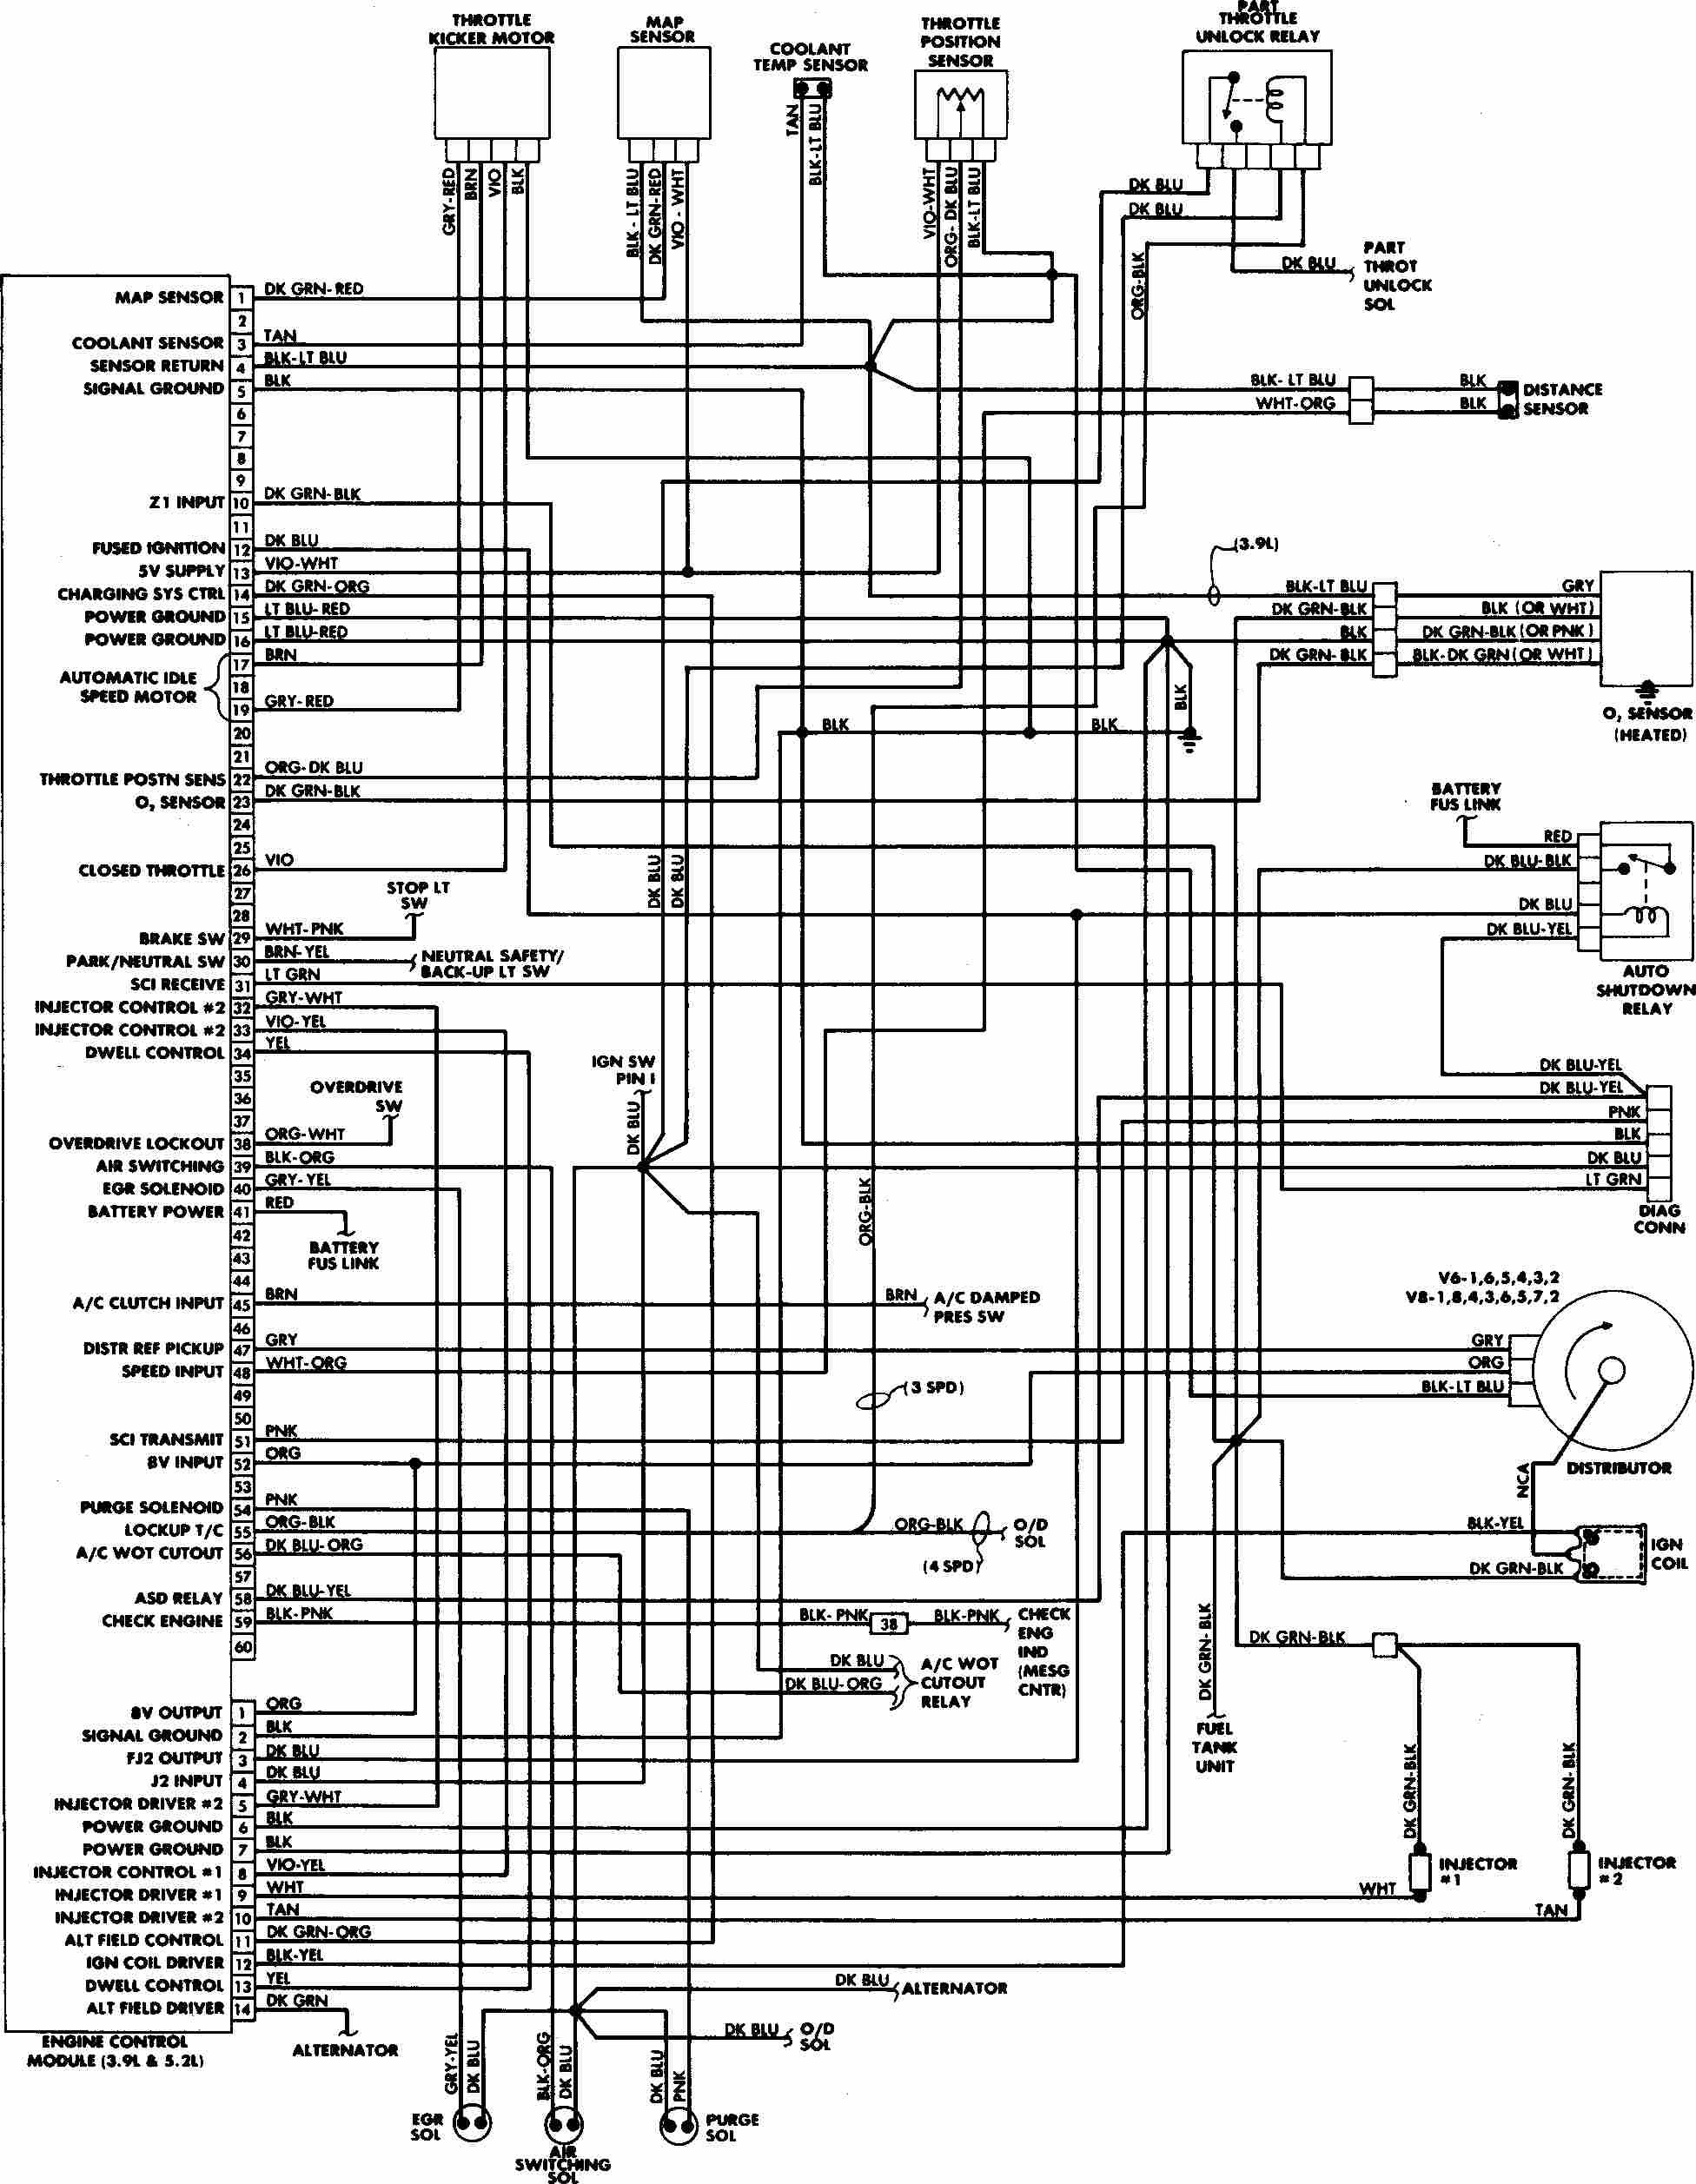 2003 dodge ram trailer wiring diagram schematic dodge ram trailer wiring color code 2003 dodge